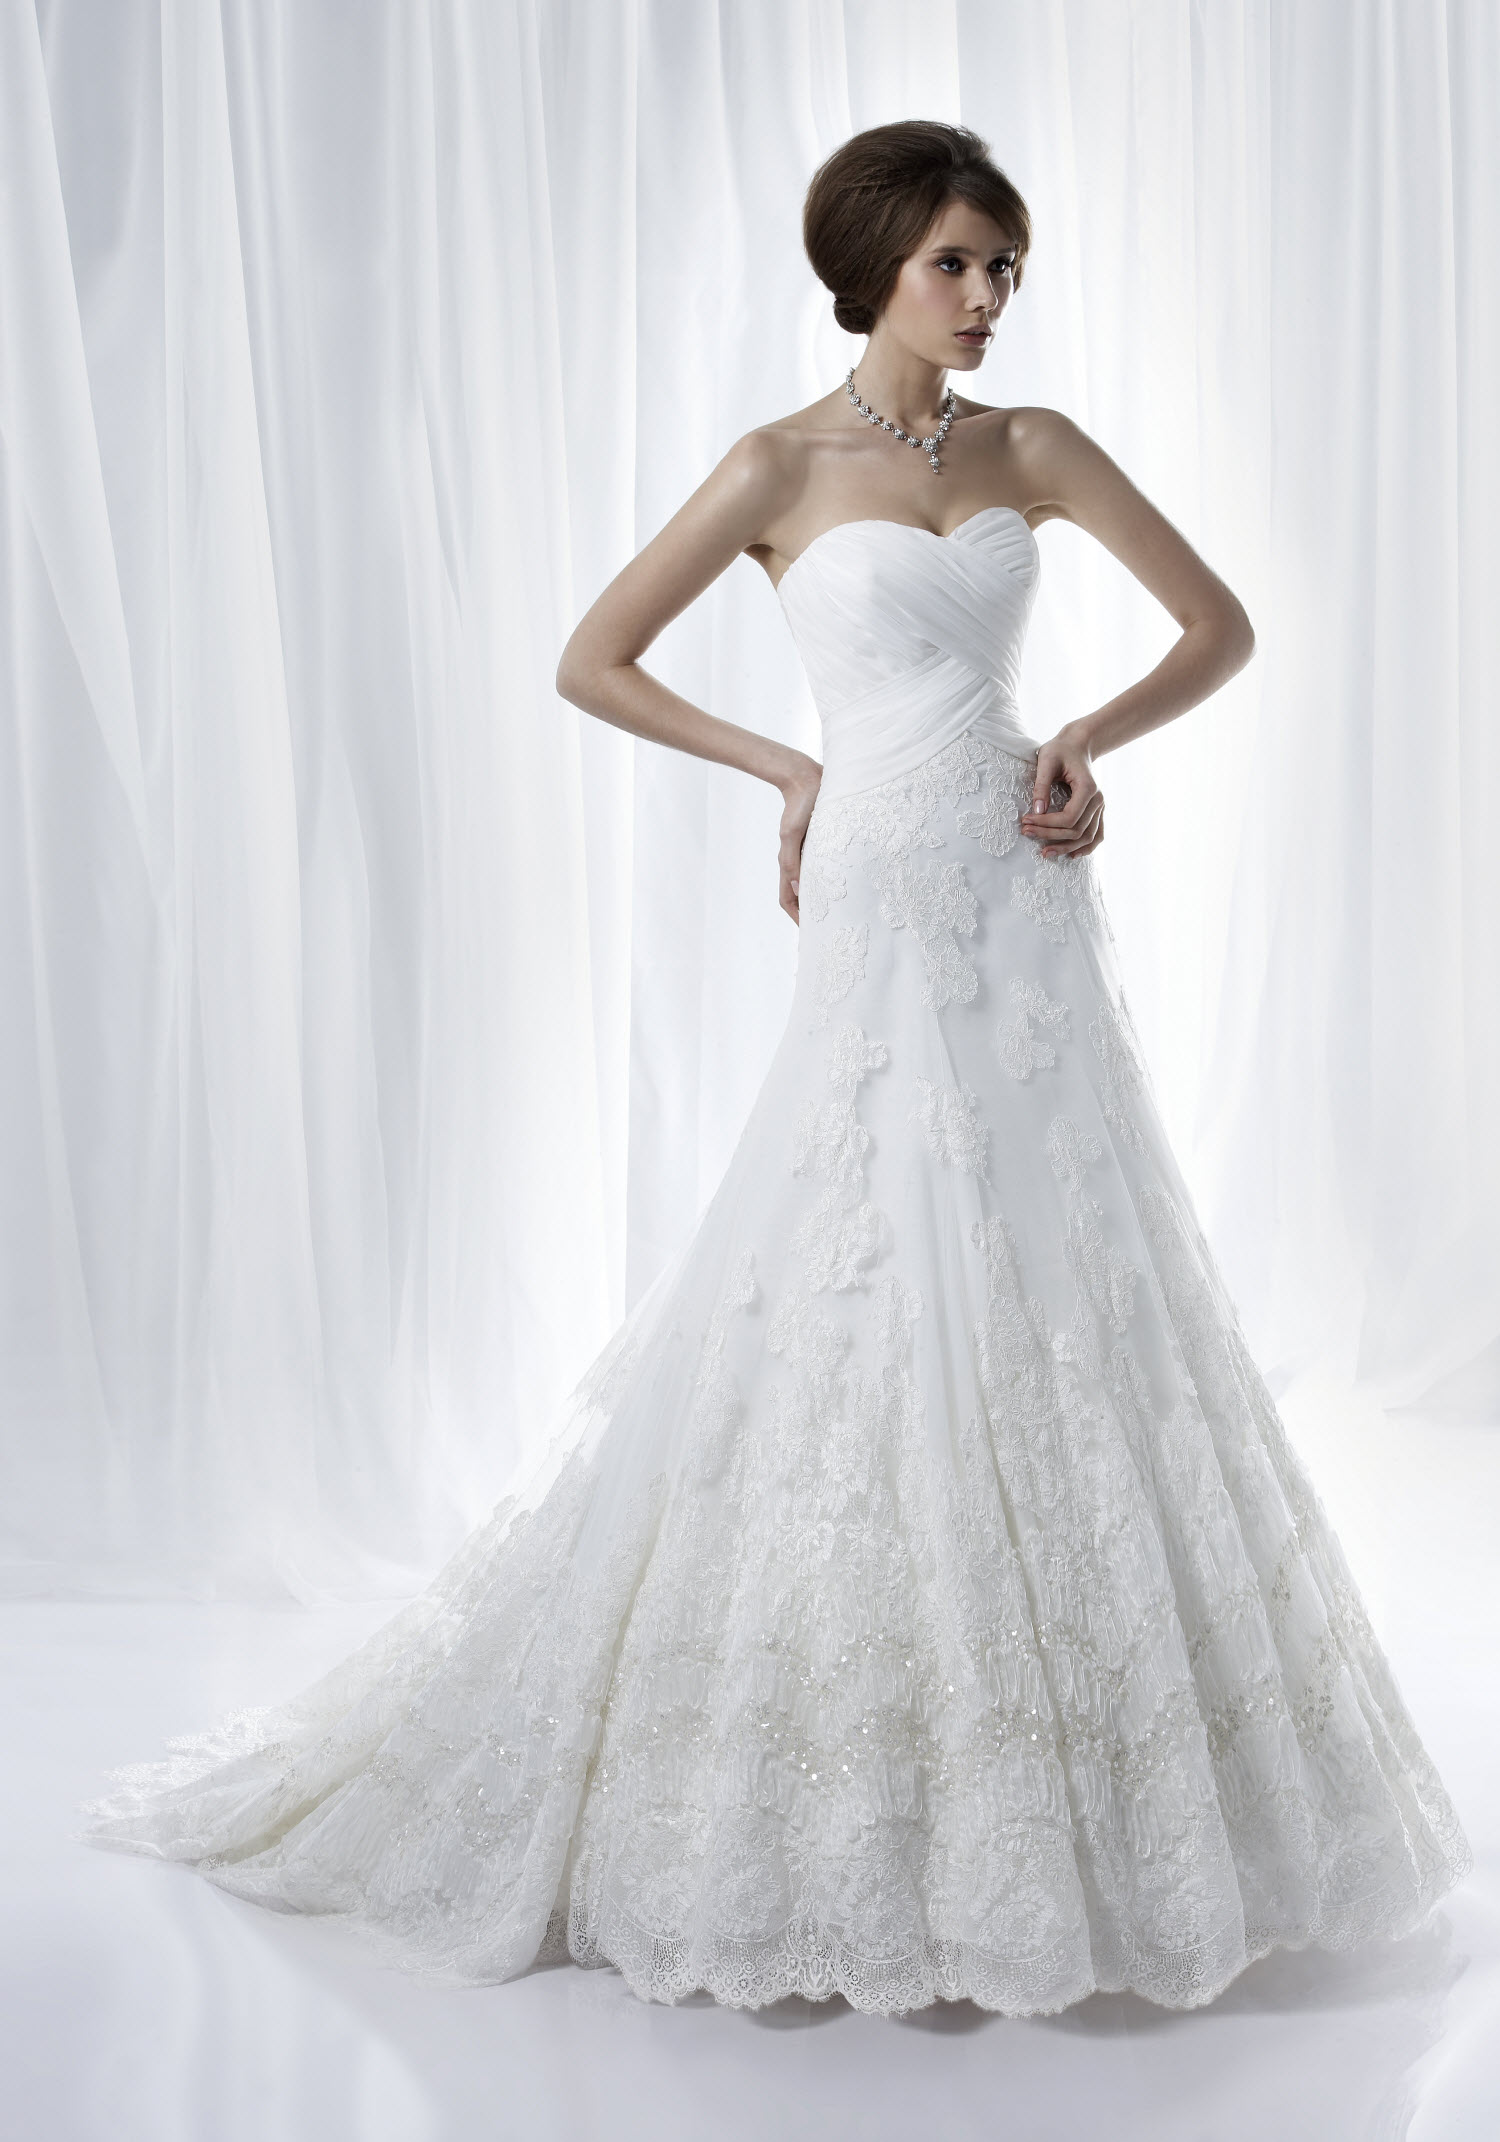 Wedding Classic Wedding Dresses wedding dresses photos free tuesday 30 july 2013